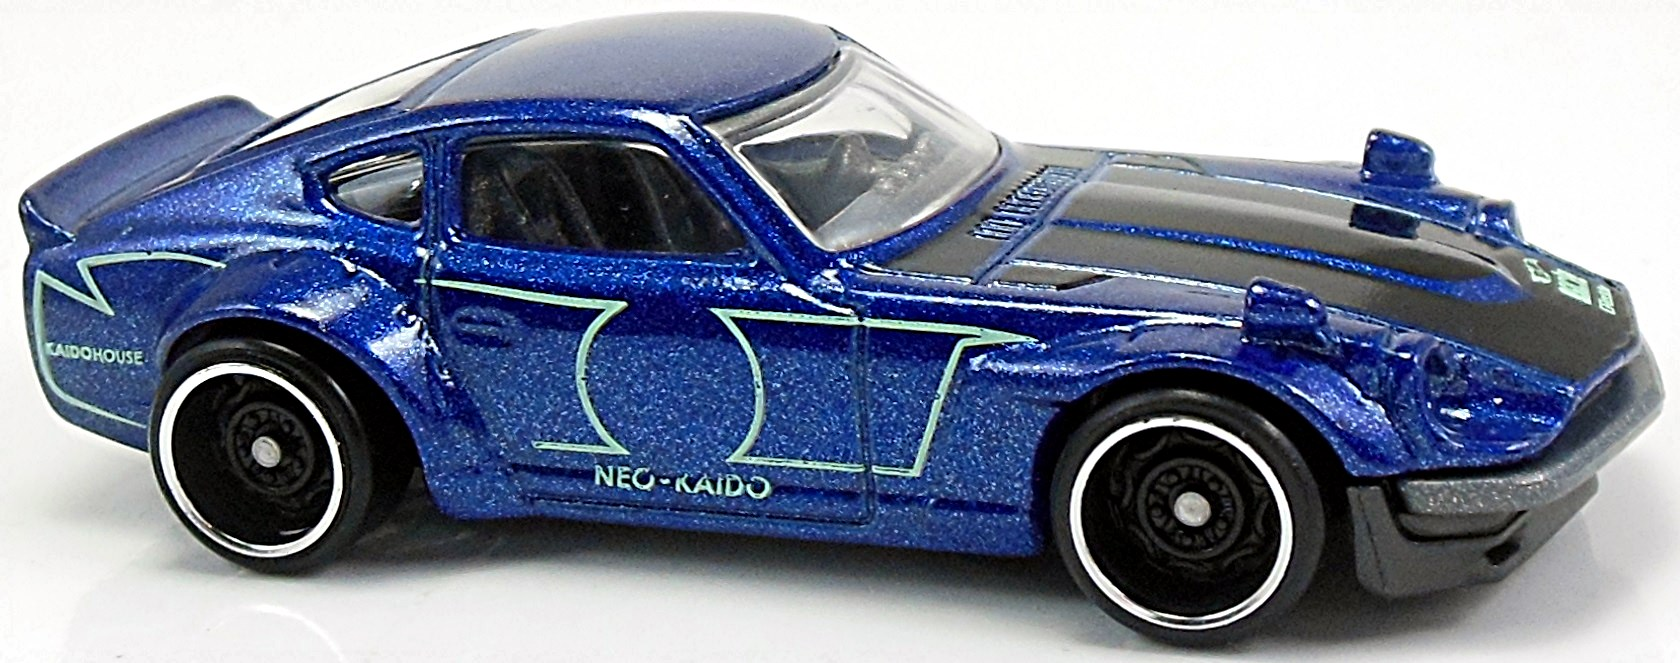 Custom Datsun 240Z - 70mm - 2017 | Hot Wheels Newsletter